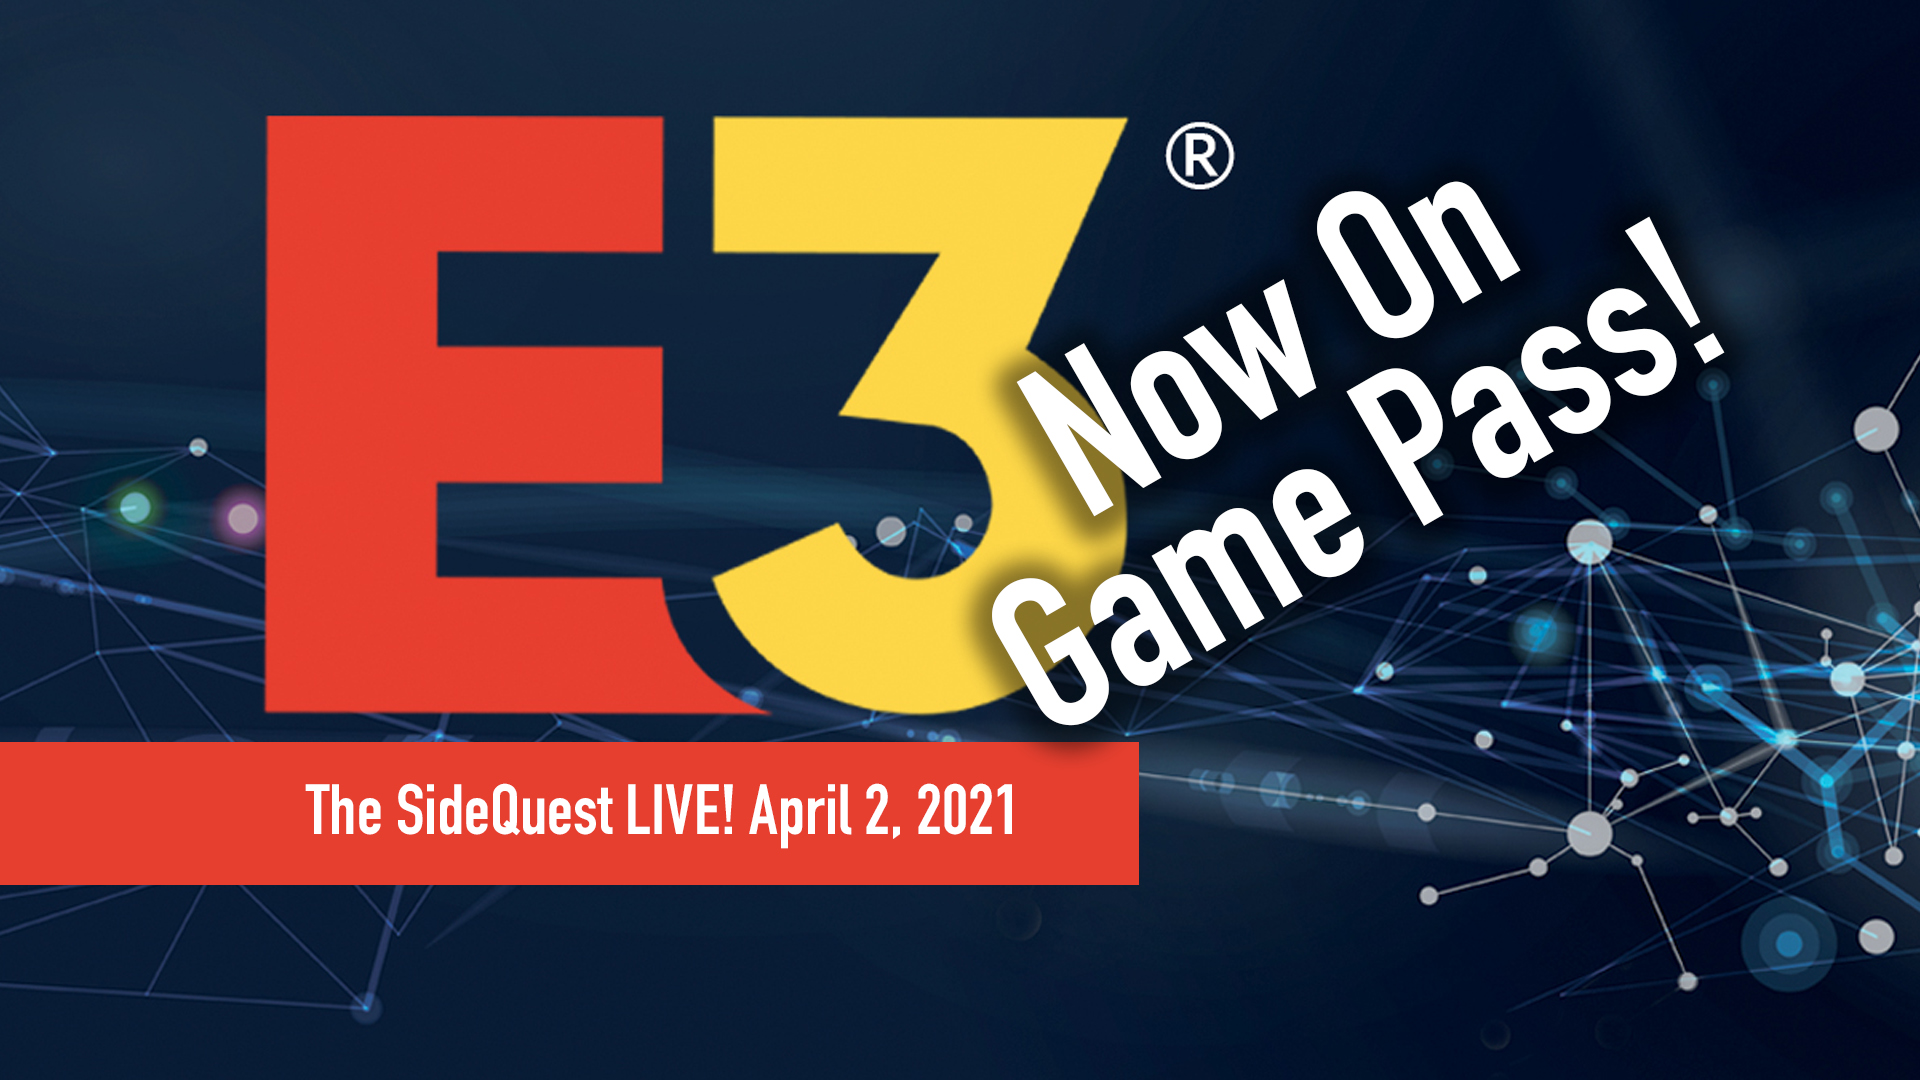 The SideQuest LIVE! April 2, 2021: E3 is on Game Pass